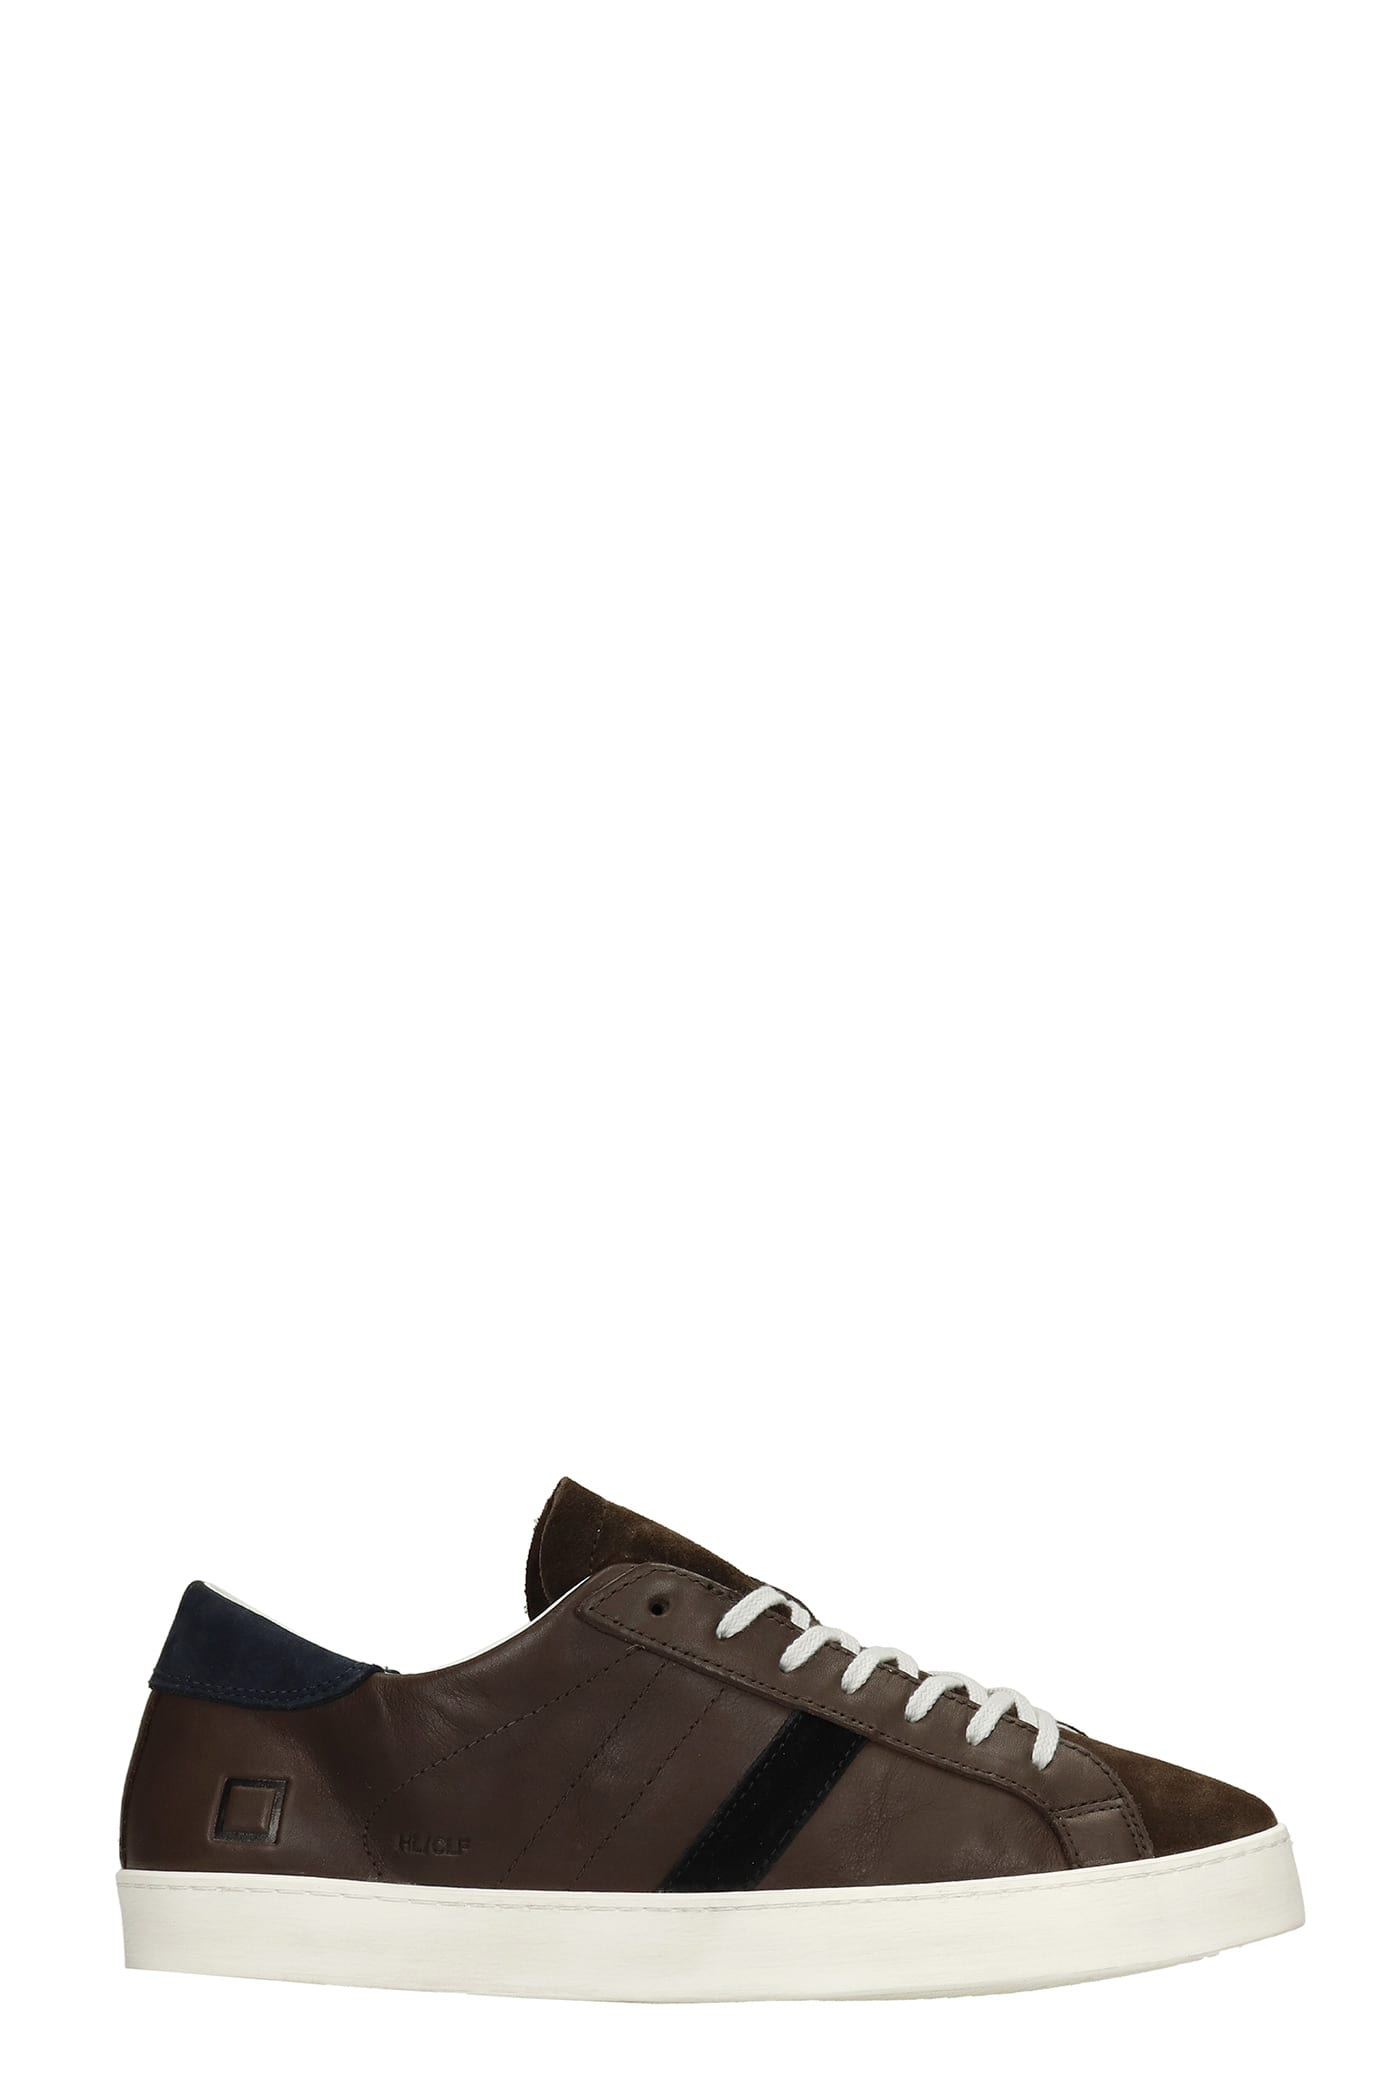 Hill Low Sneakers In Dark Brown Leather